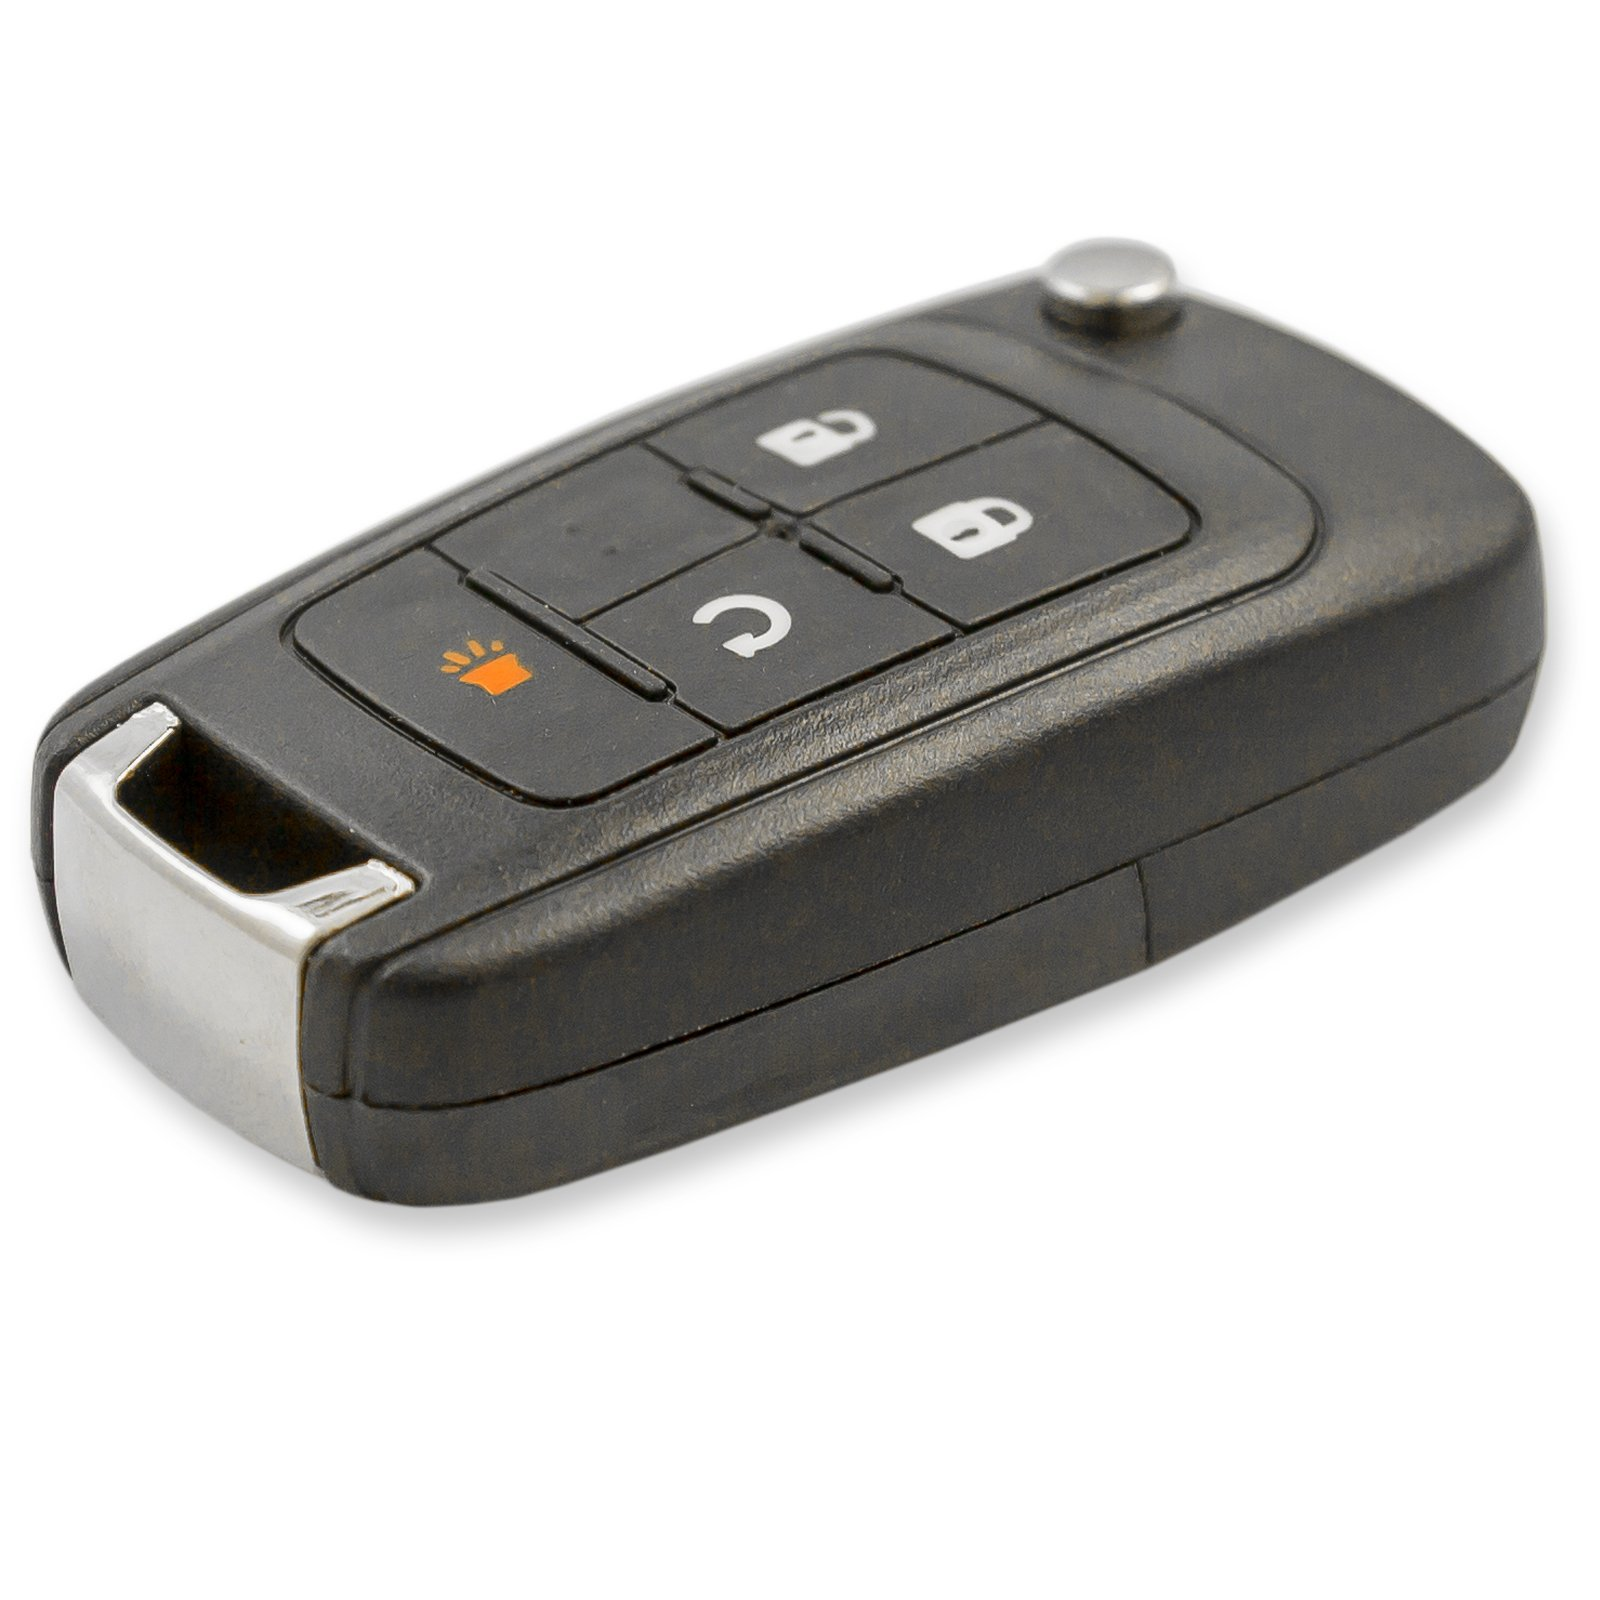 Keyless2Go Replacement Keyless Remote 4 Button Flip Car Key Fob For OHT01060512 by Keyless2Go (Image #3)